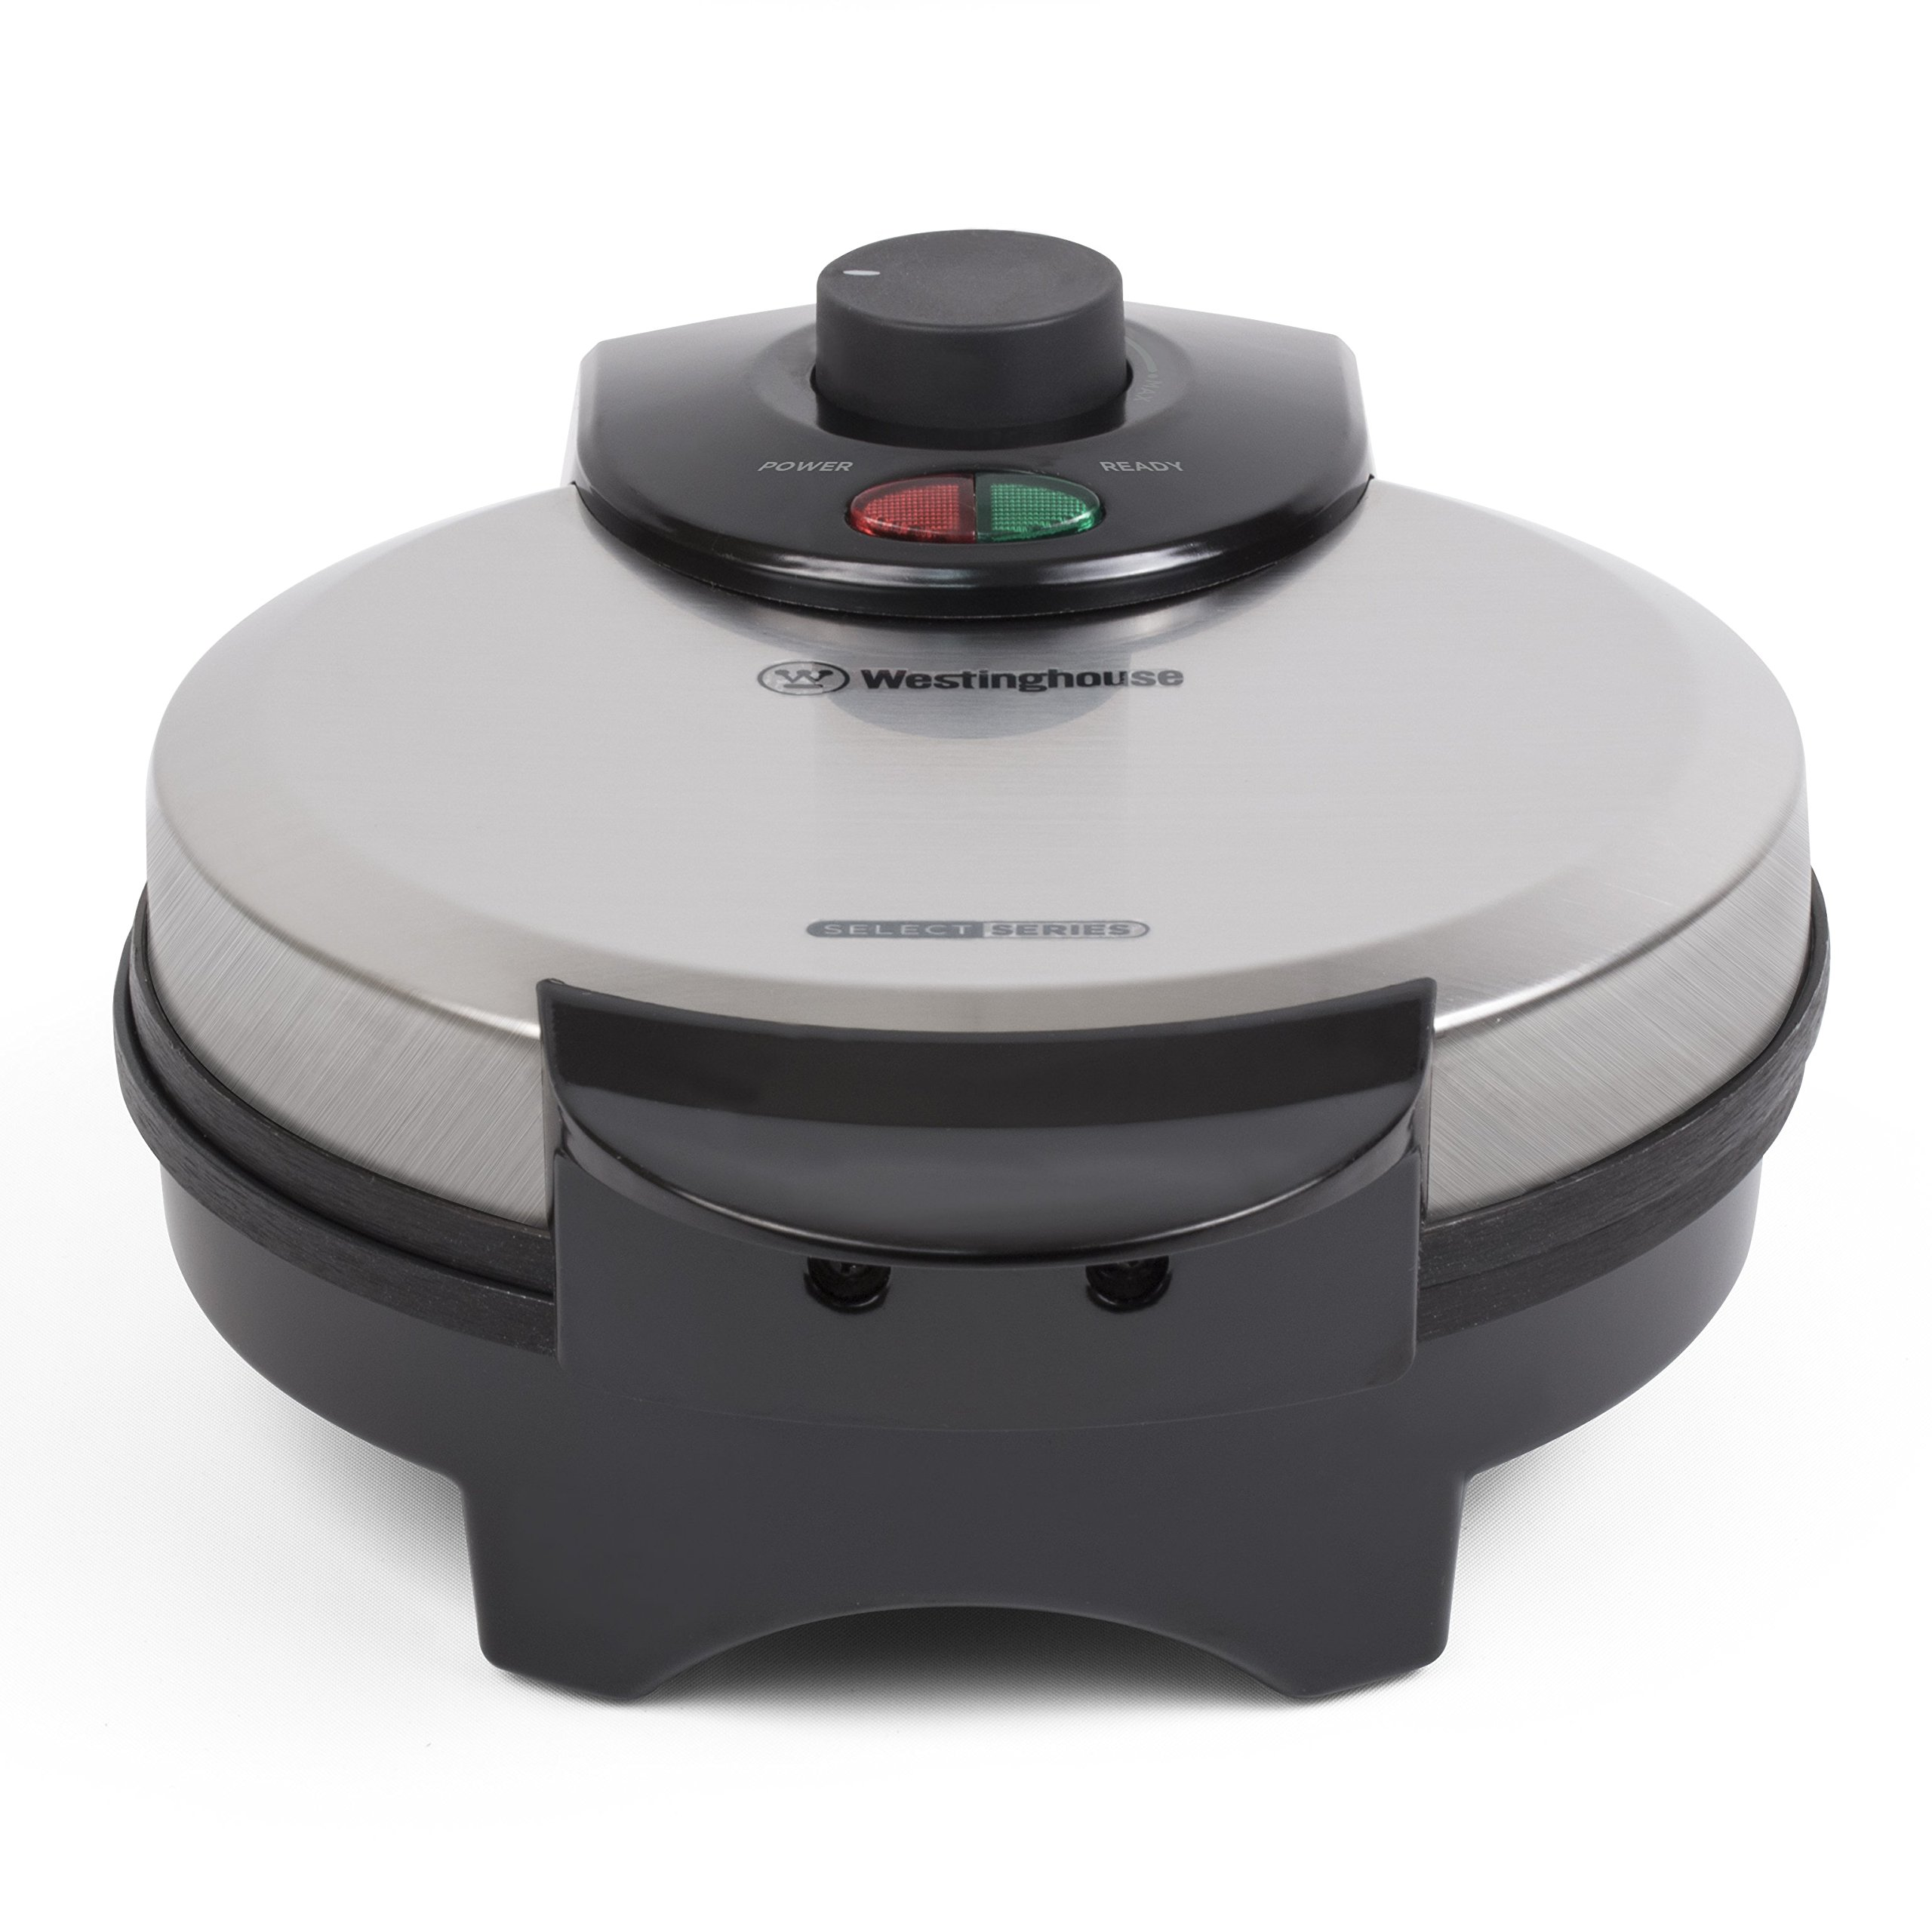 Westinghouse WWM1SSA Select Series Stainless Steel Waffle Maker by Westinghouse (Image #2)